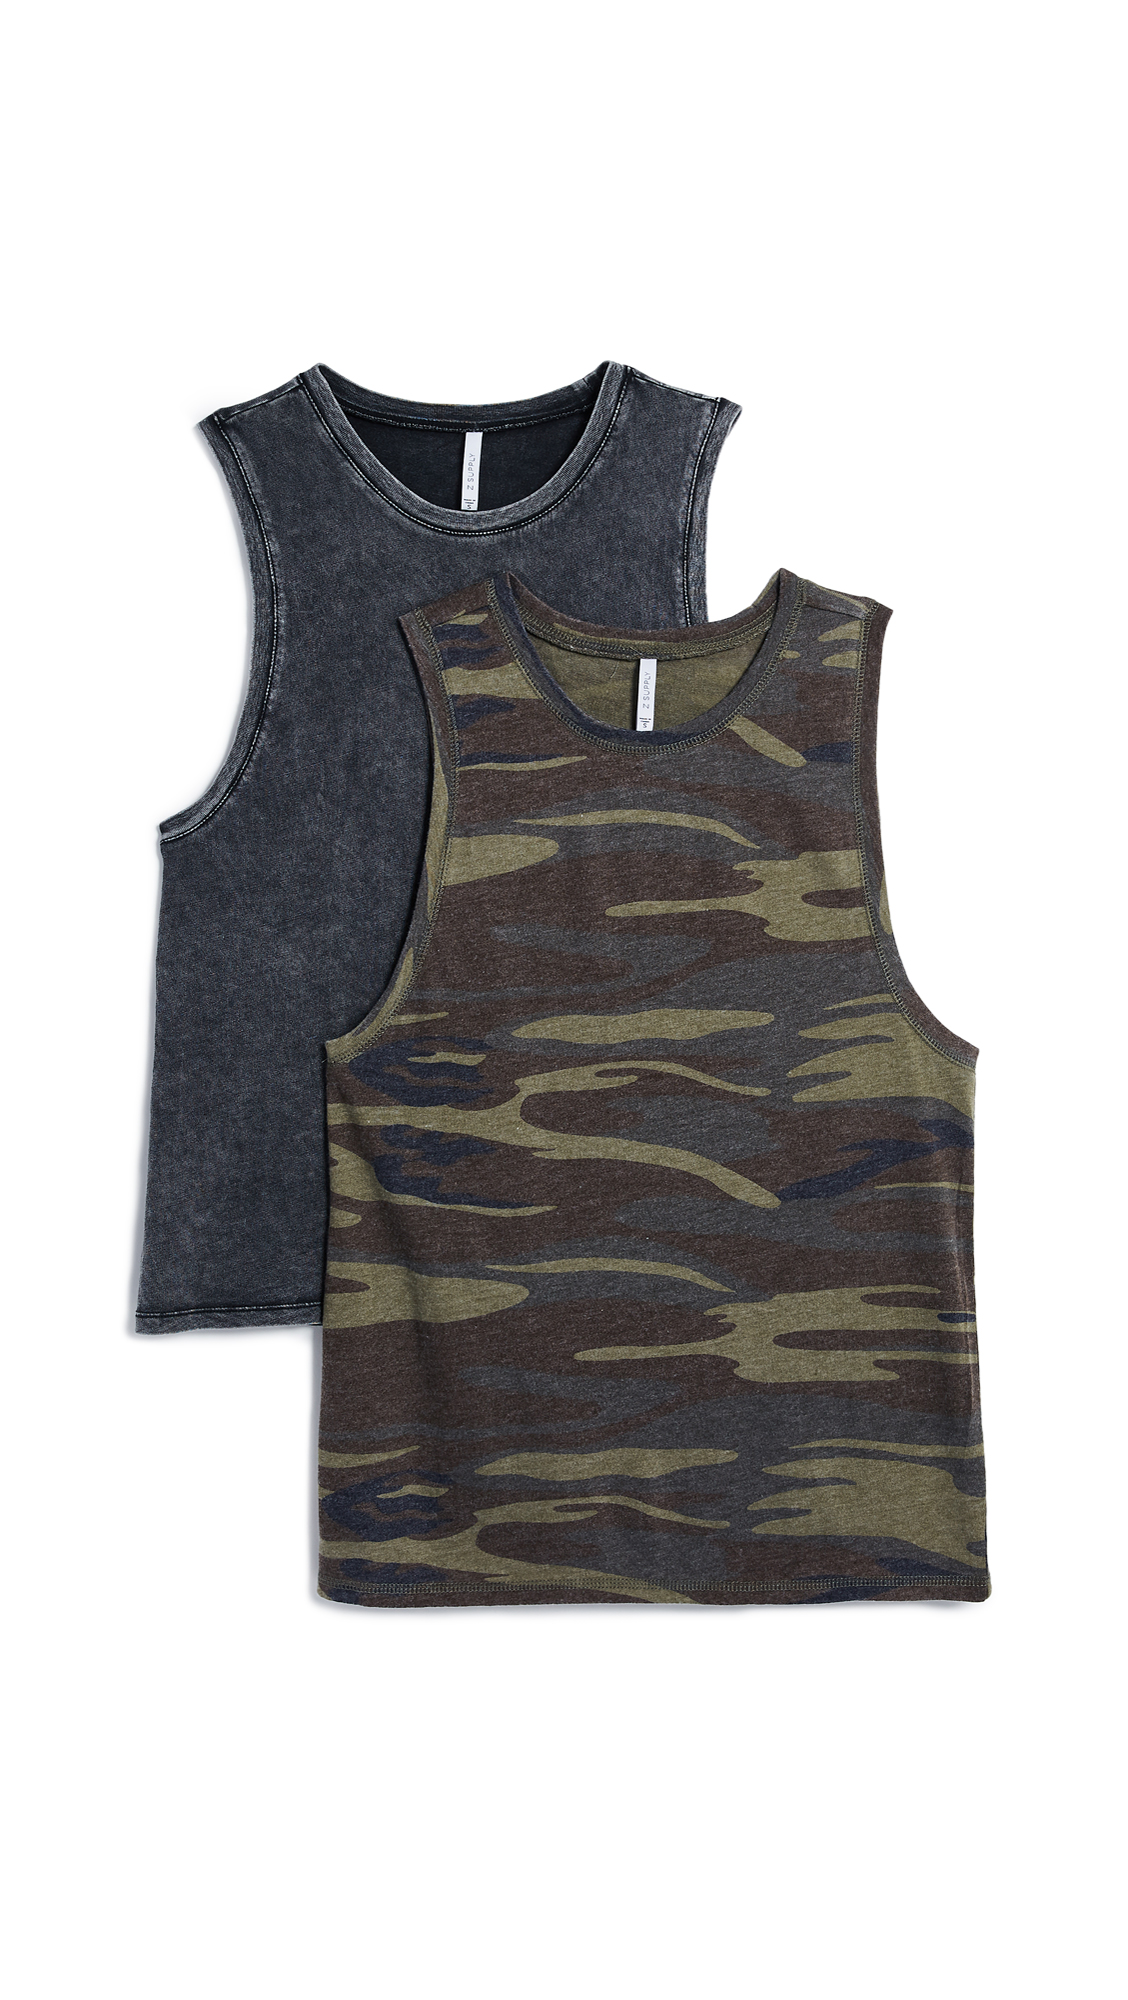 THE CAMO MUSCLE TANK 2 PACK